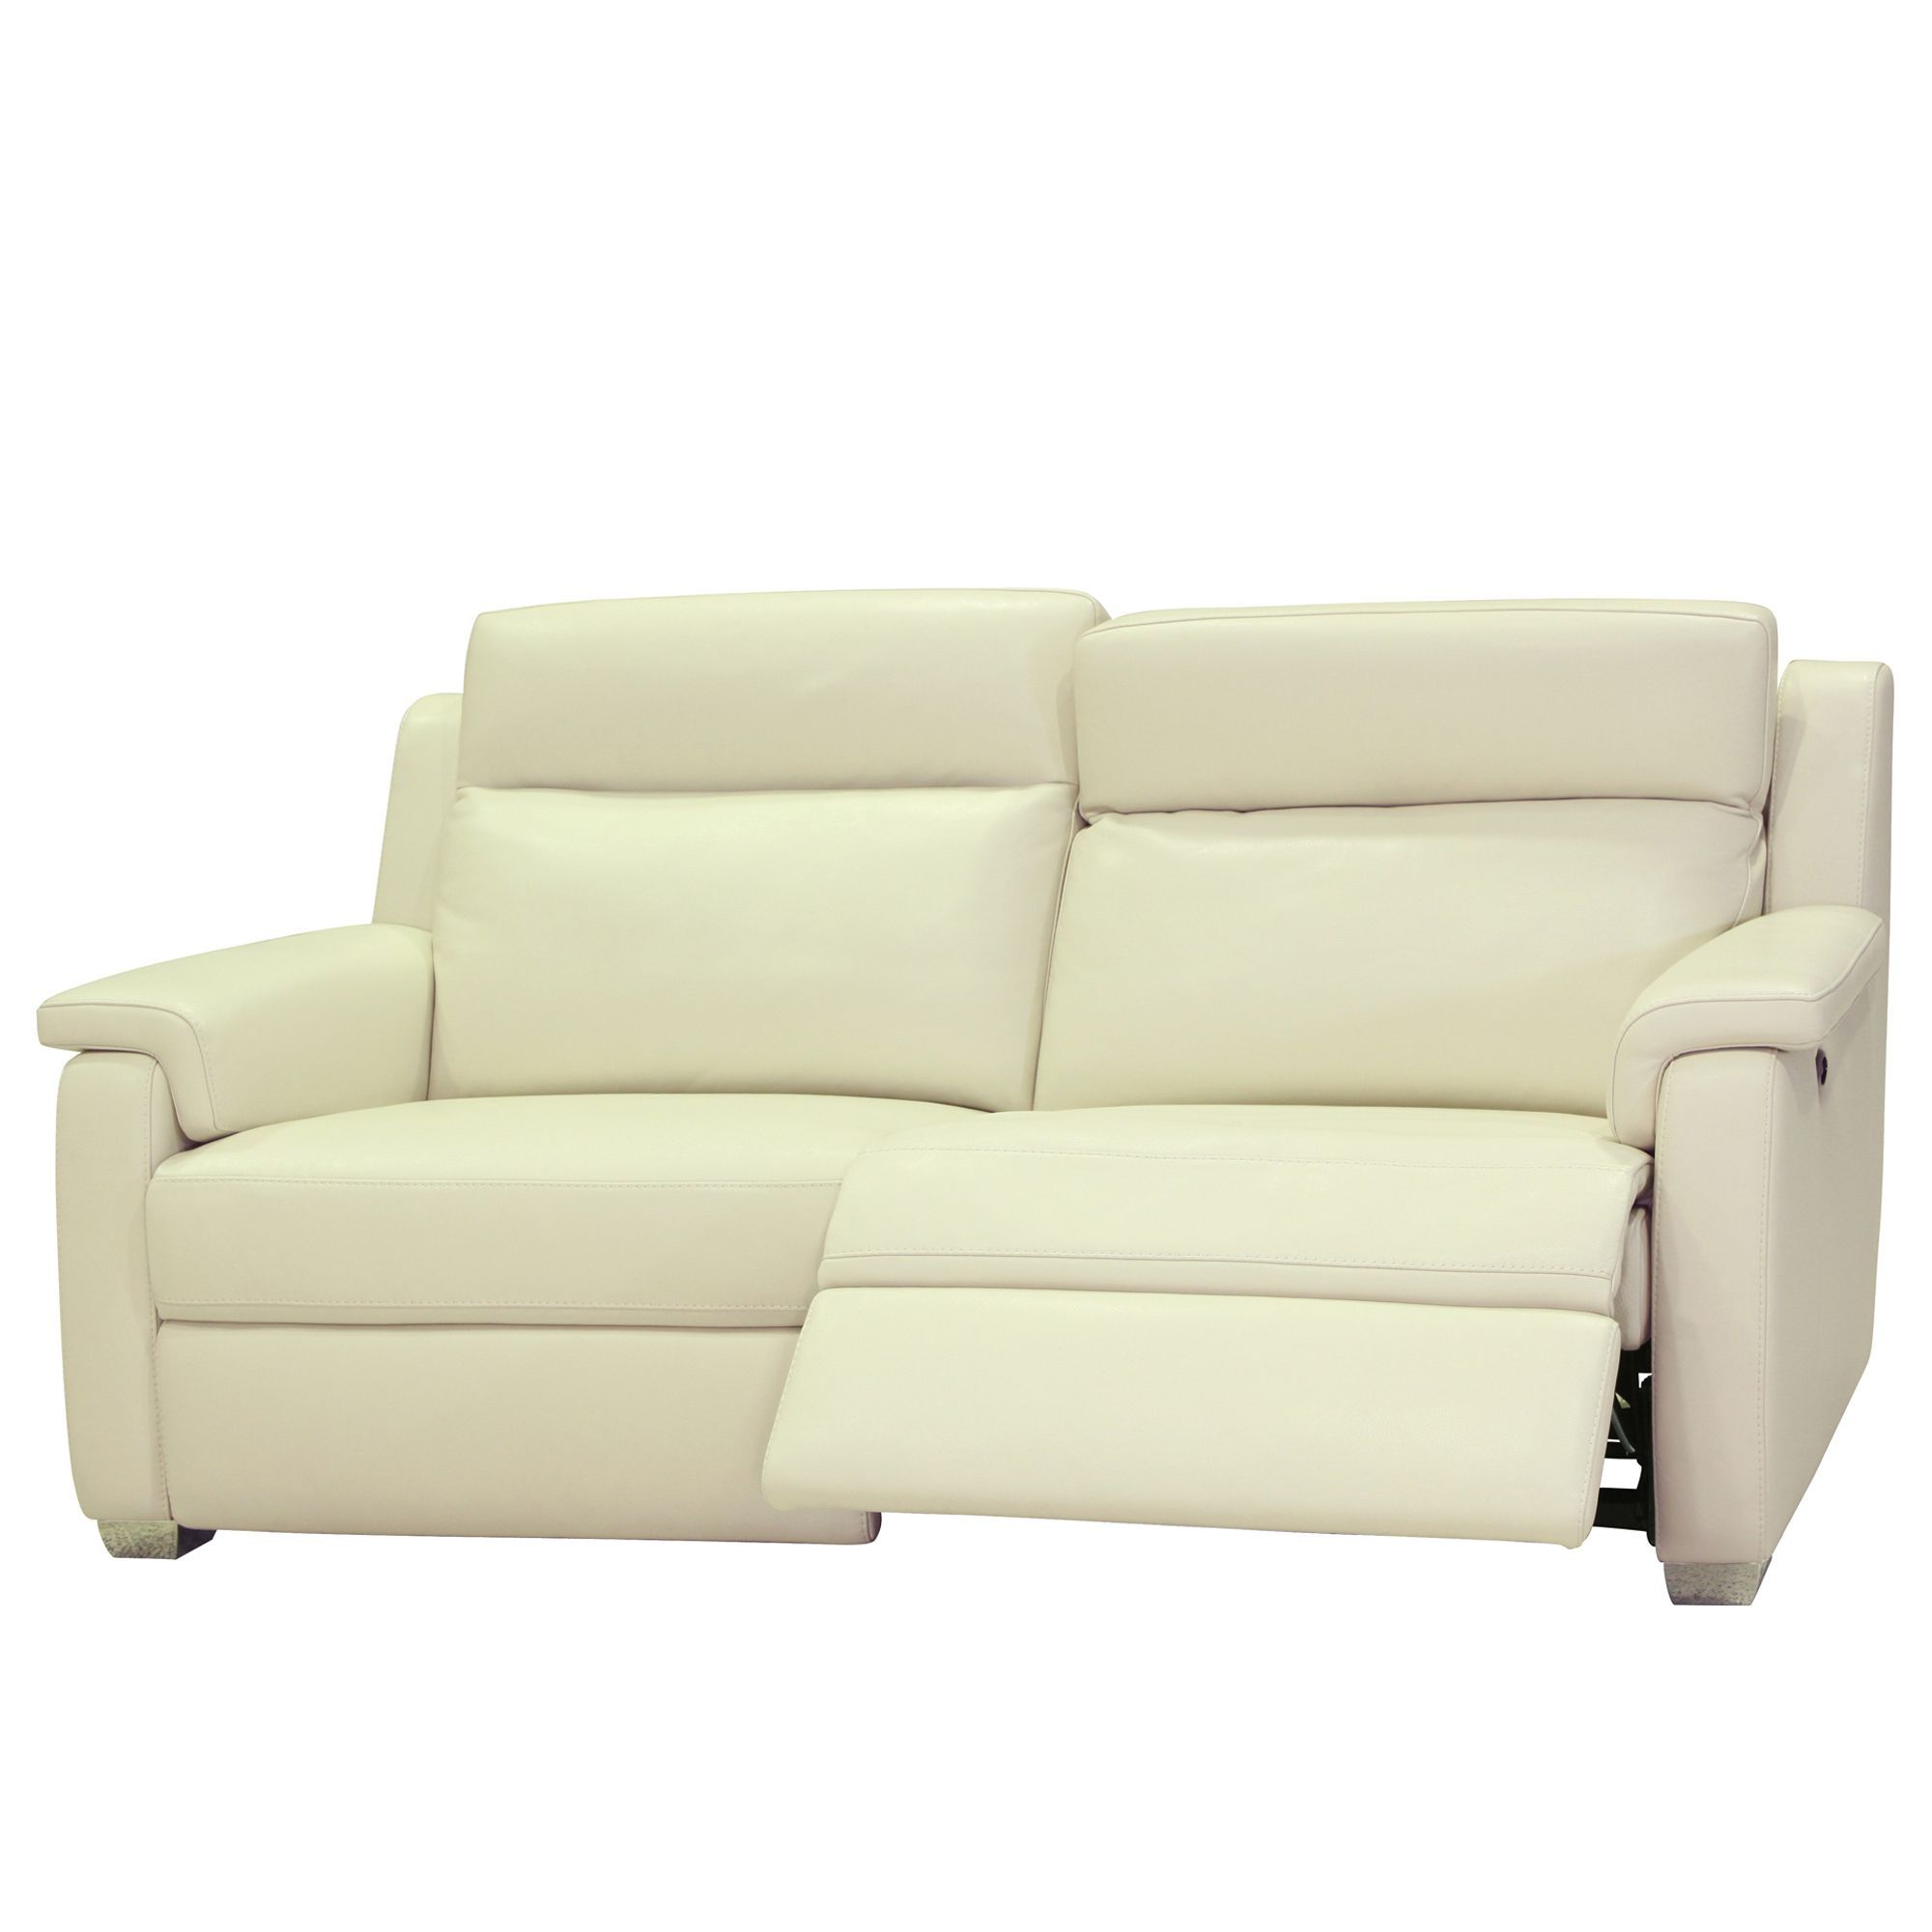 Cookes Collection Victoria 2 5 Seater Electric Recliner Sofa